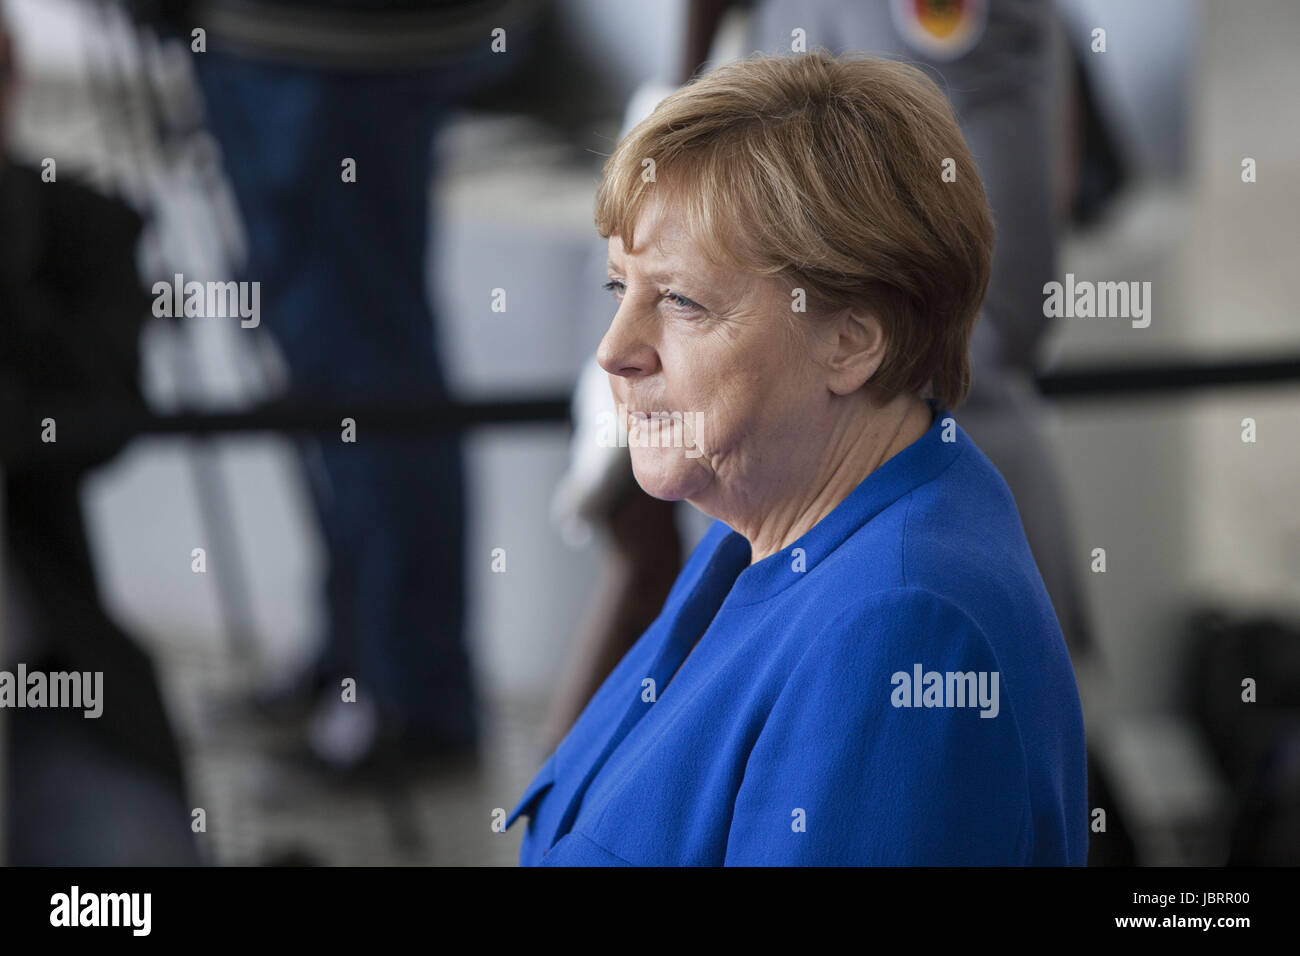 Berlin, Germany. 12th June, 2017. German Chancellor Angela Merkel is Seen waiting to a delegation of African leaders Stock Photo